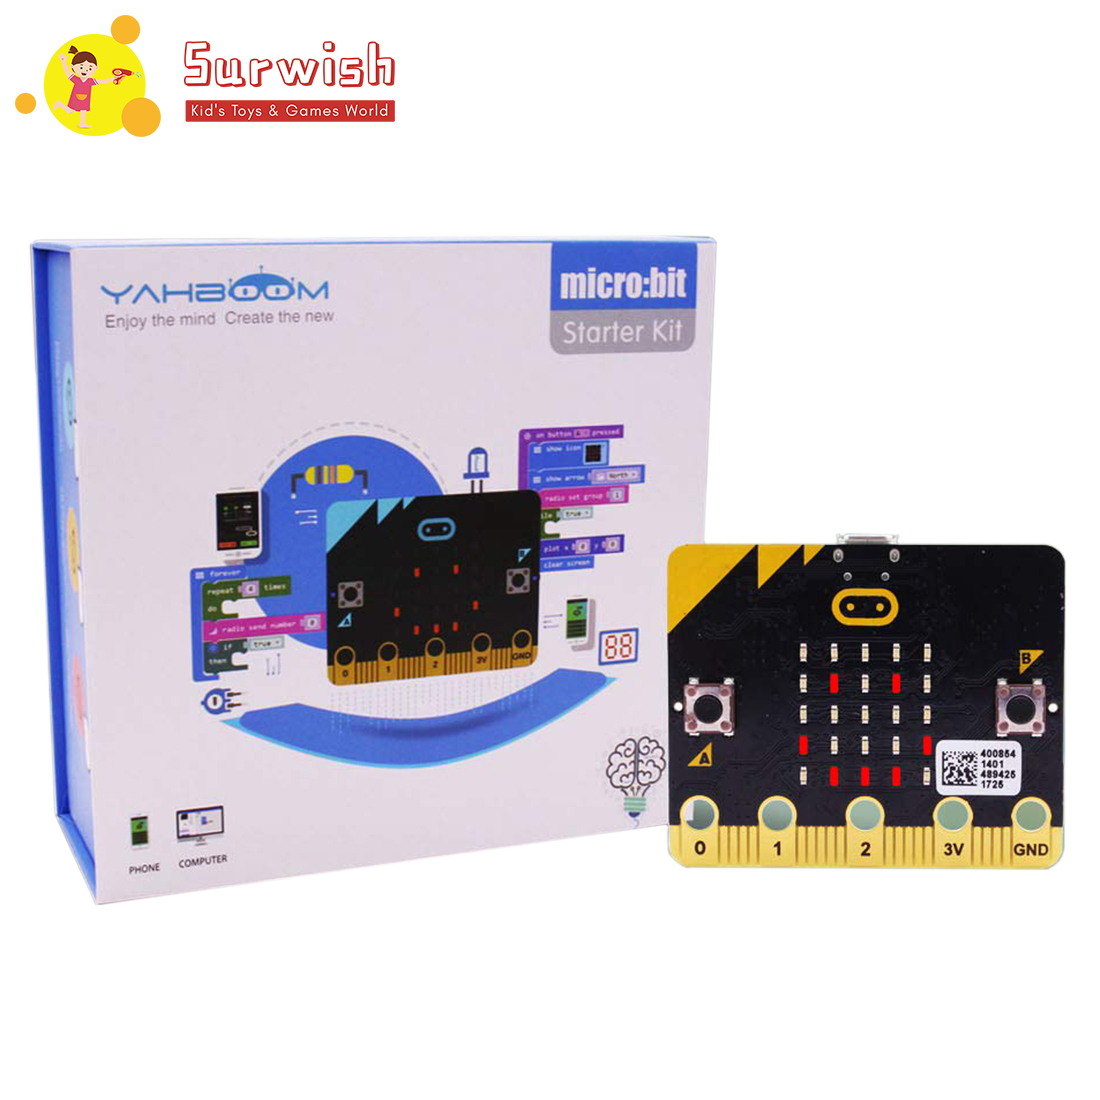 Micro:bit Kit Starter Learning Kit Micro Bit Board Graphical Programmable STEM Toys With Guidance Manual For Kids